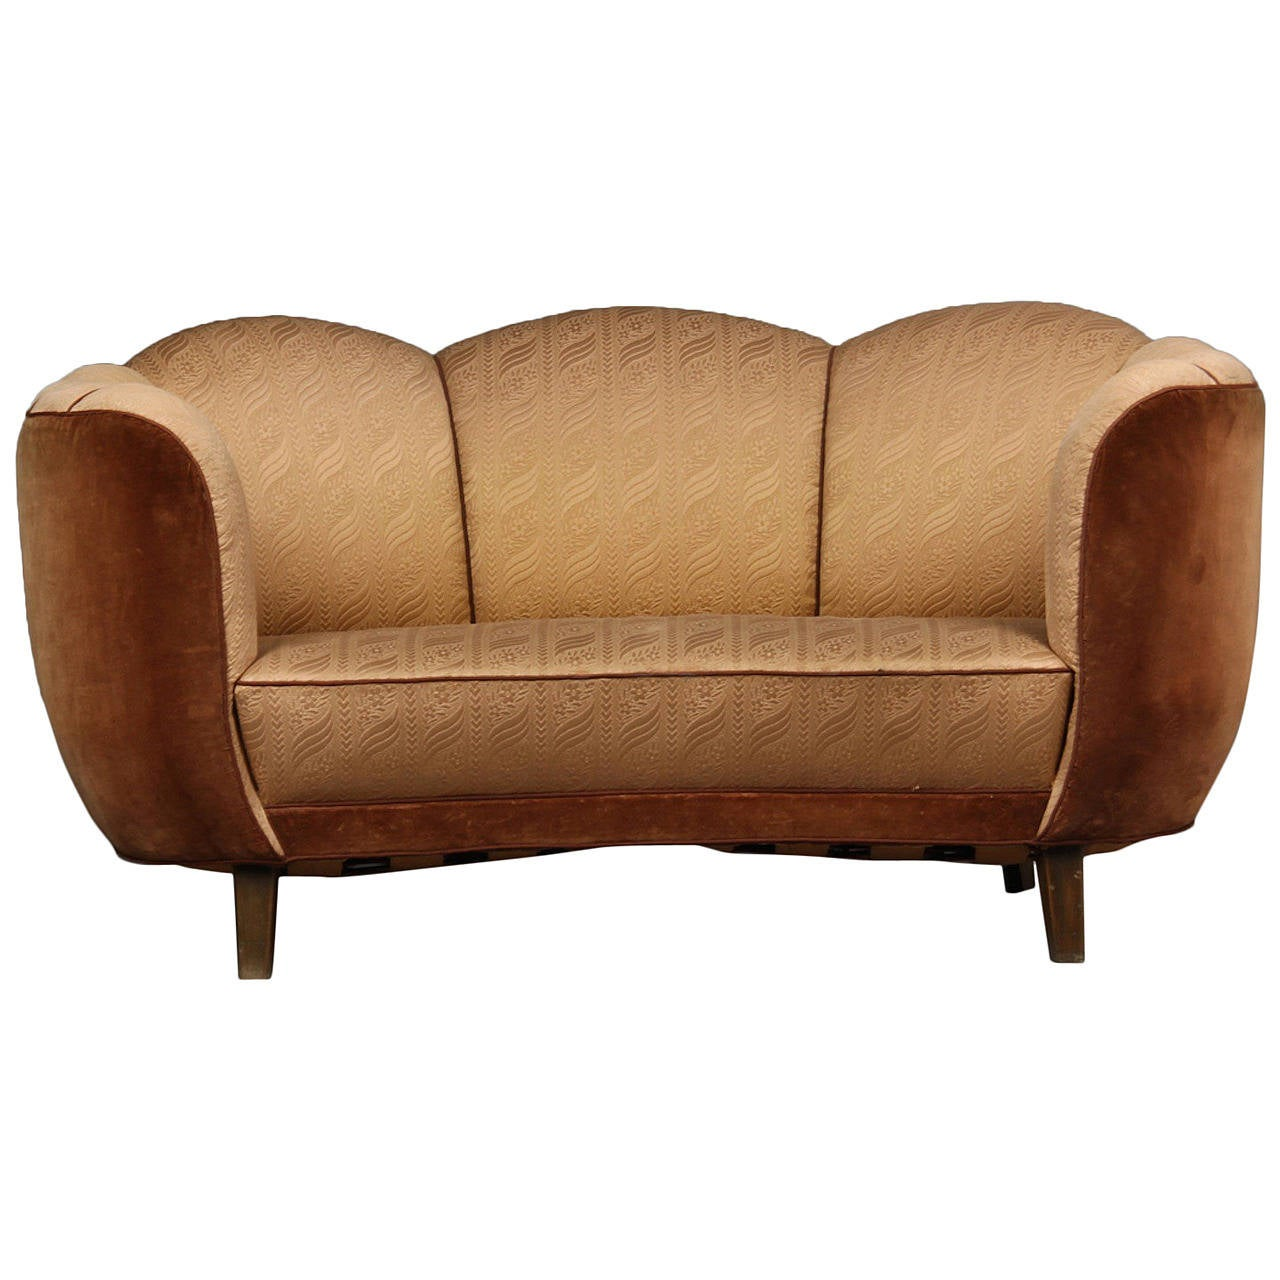 Swedish Art Deco Curved Sofa At 1stdibs